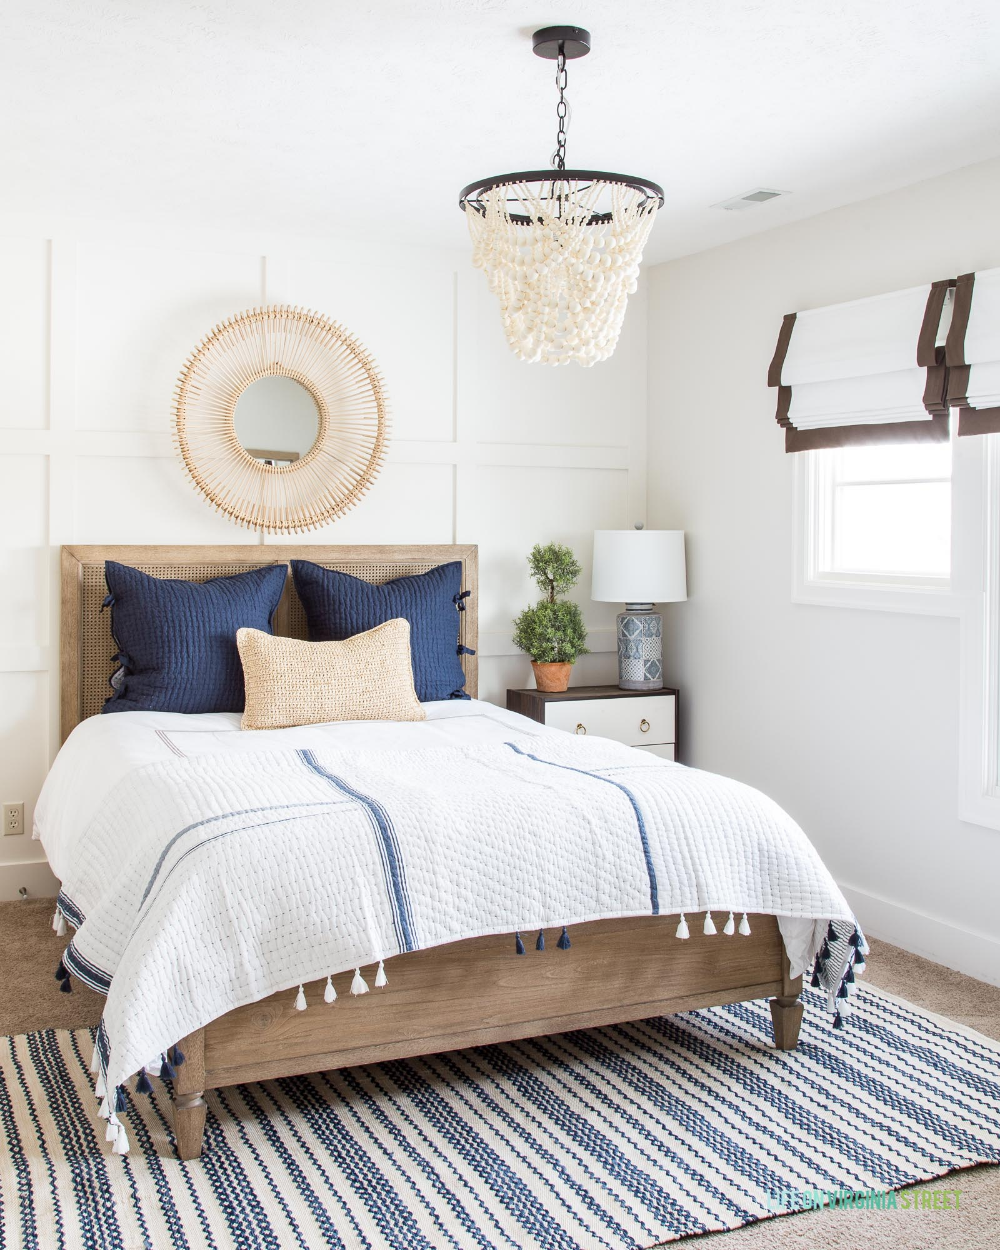 The Best White Paint Colors for Interiors Bedroom decor